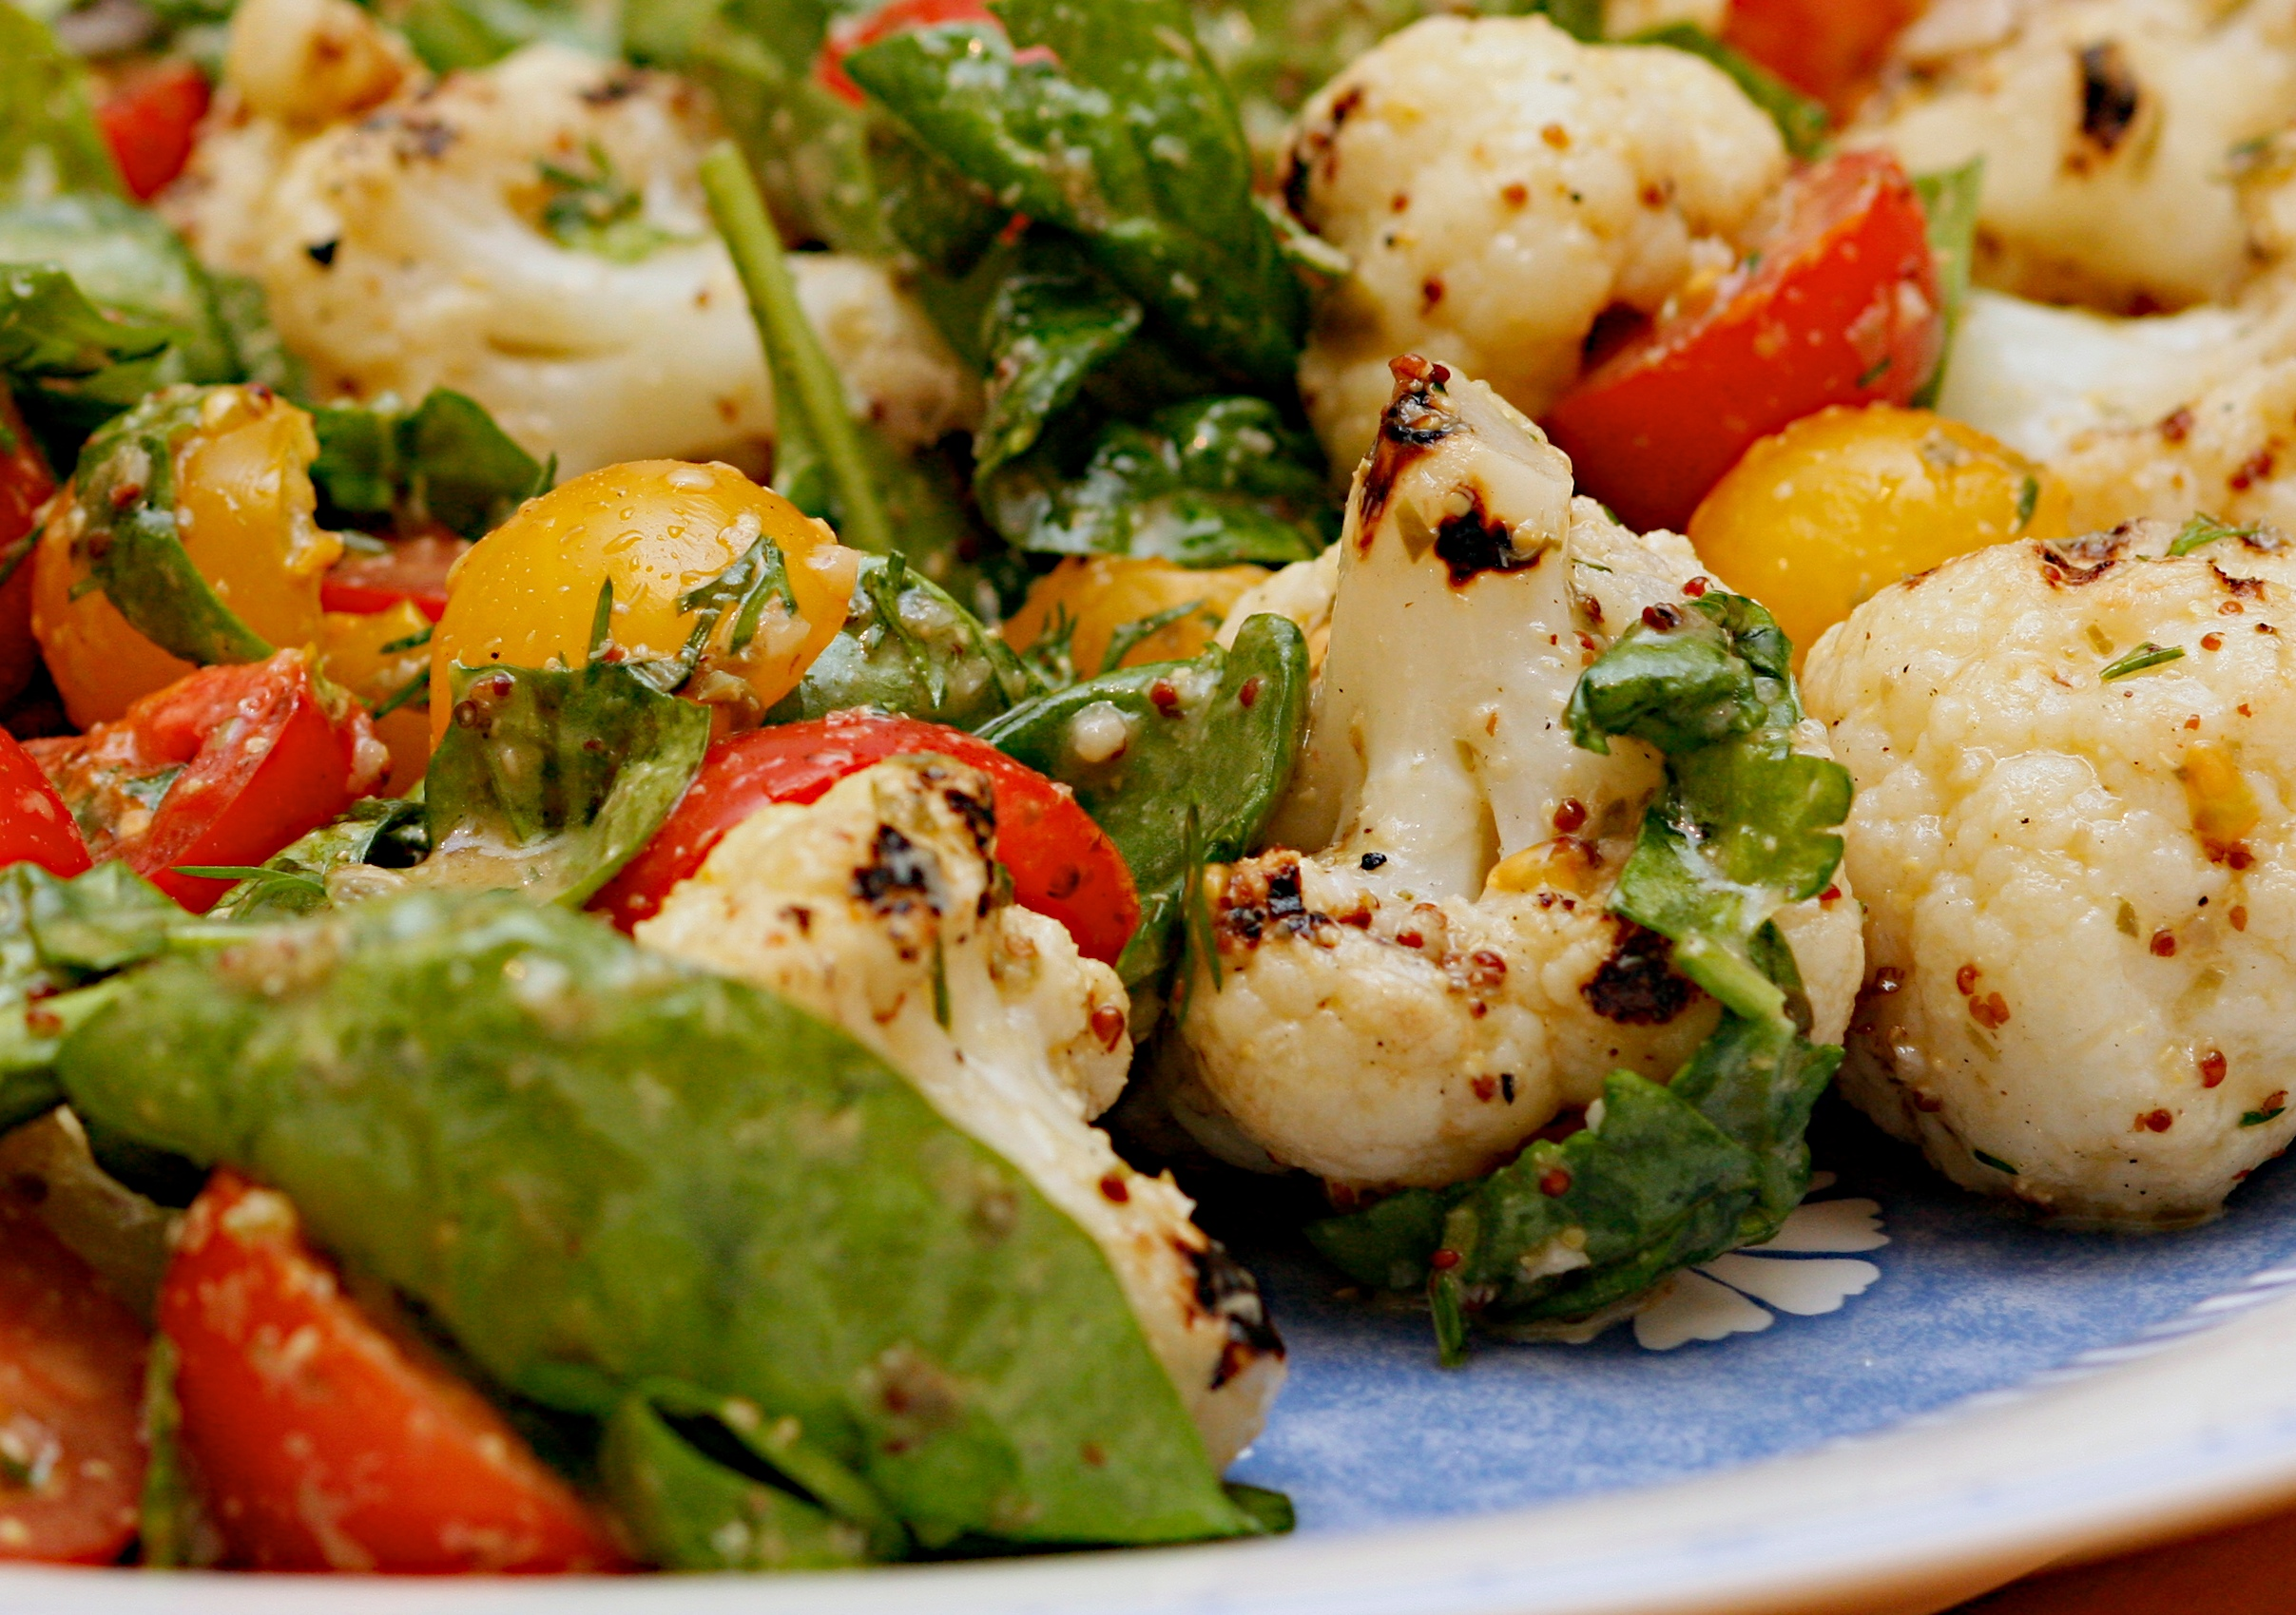 Chargrilled cauliflower salad jono jules do food wine chargrilled cauliflower salad forumfinder Image collections